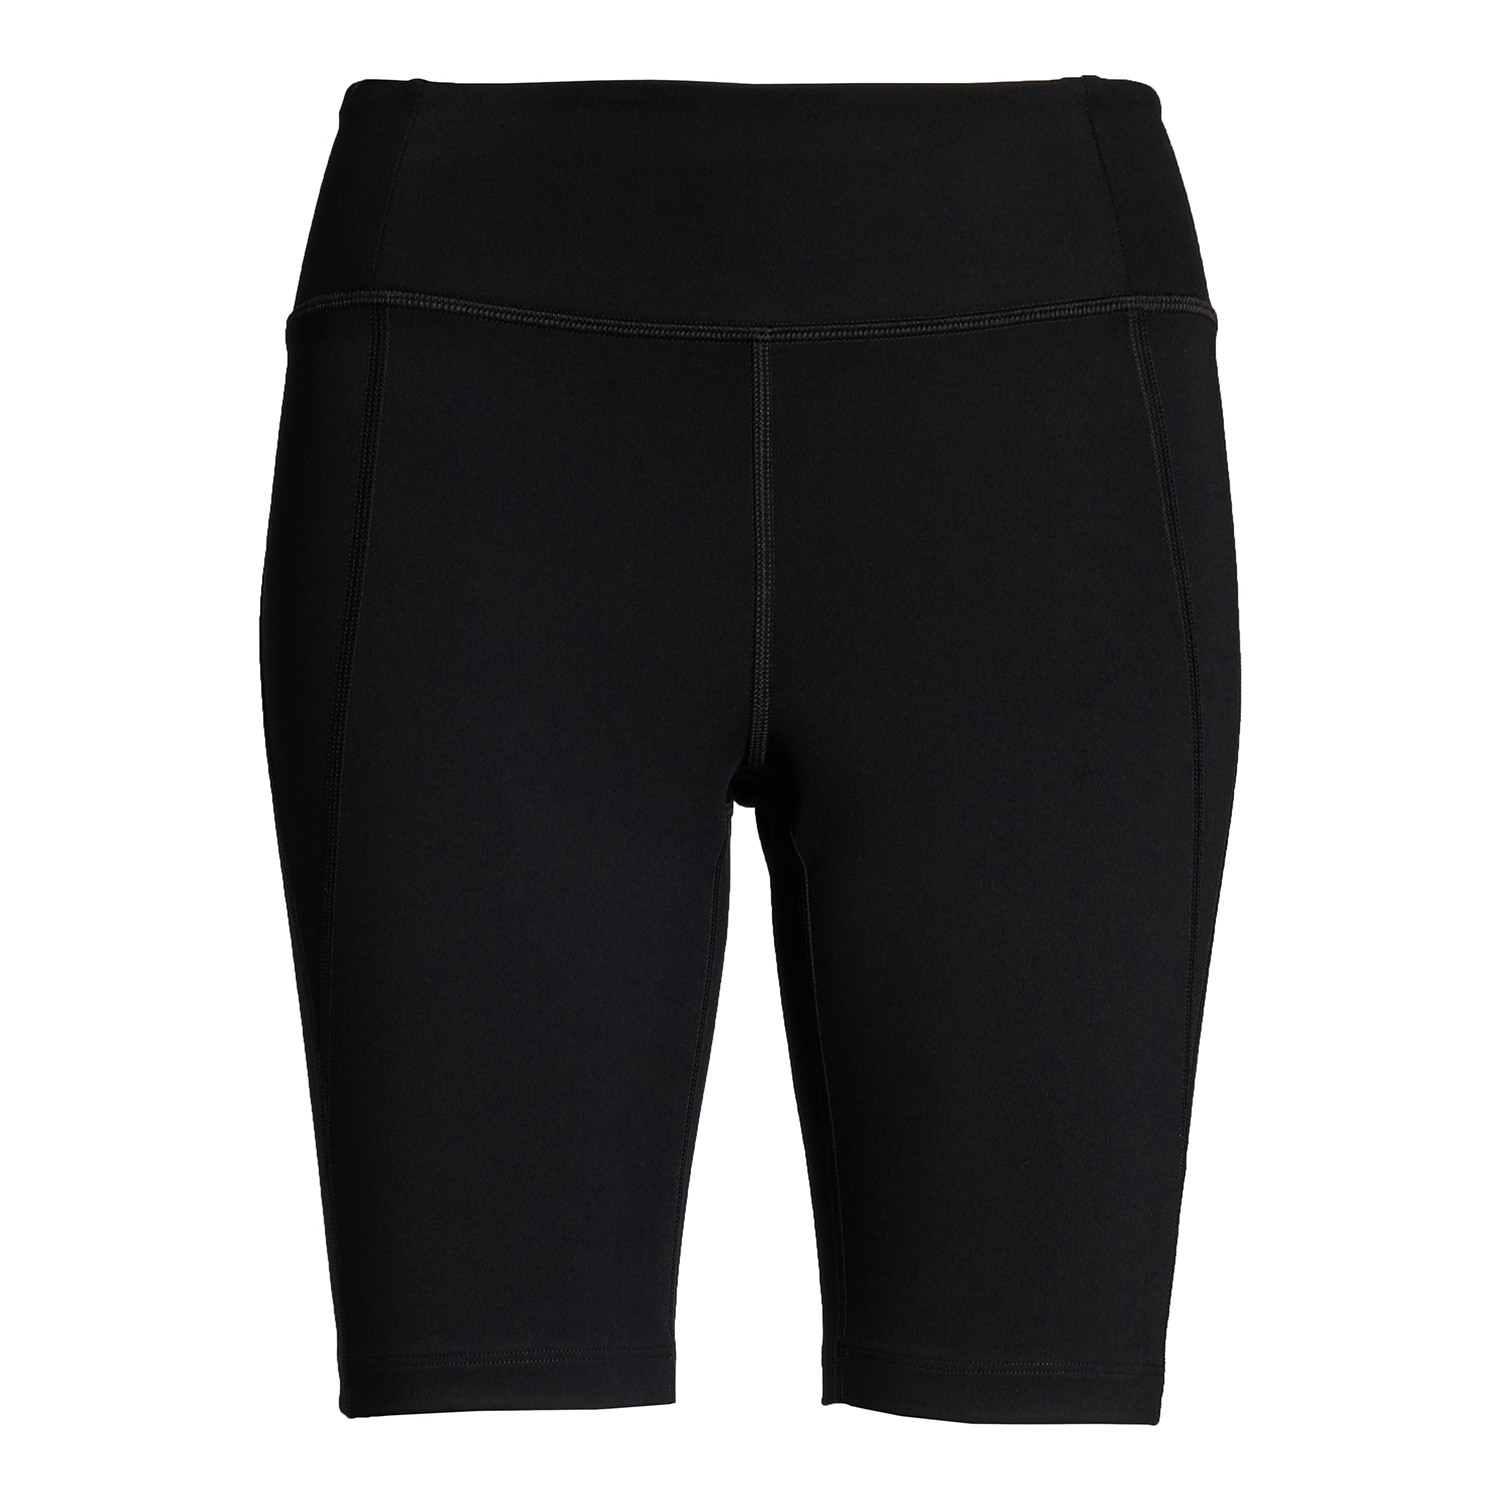 Girlfriend Collection High Waist Bike Shorts Black